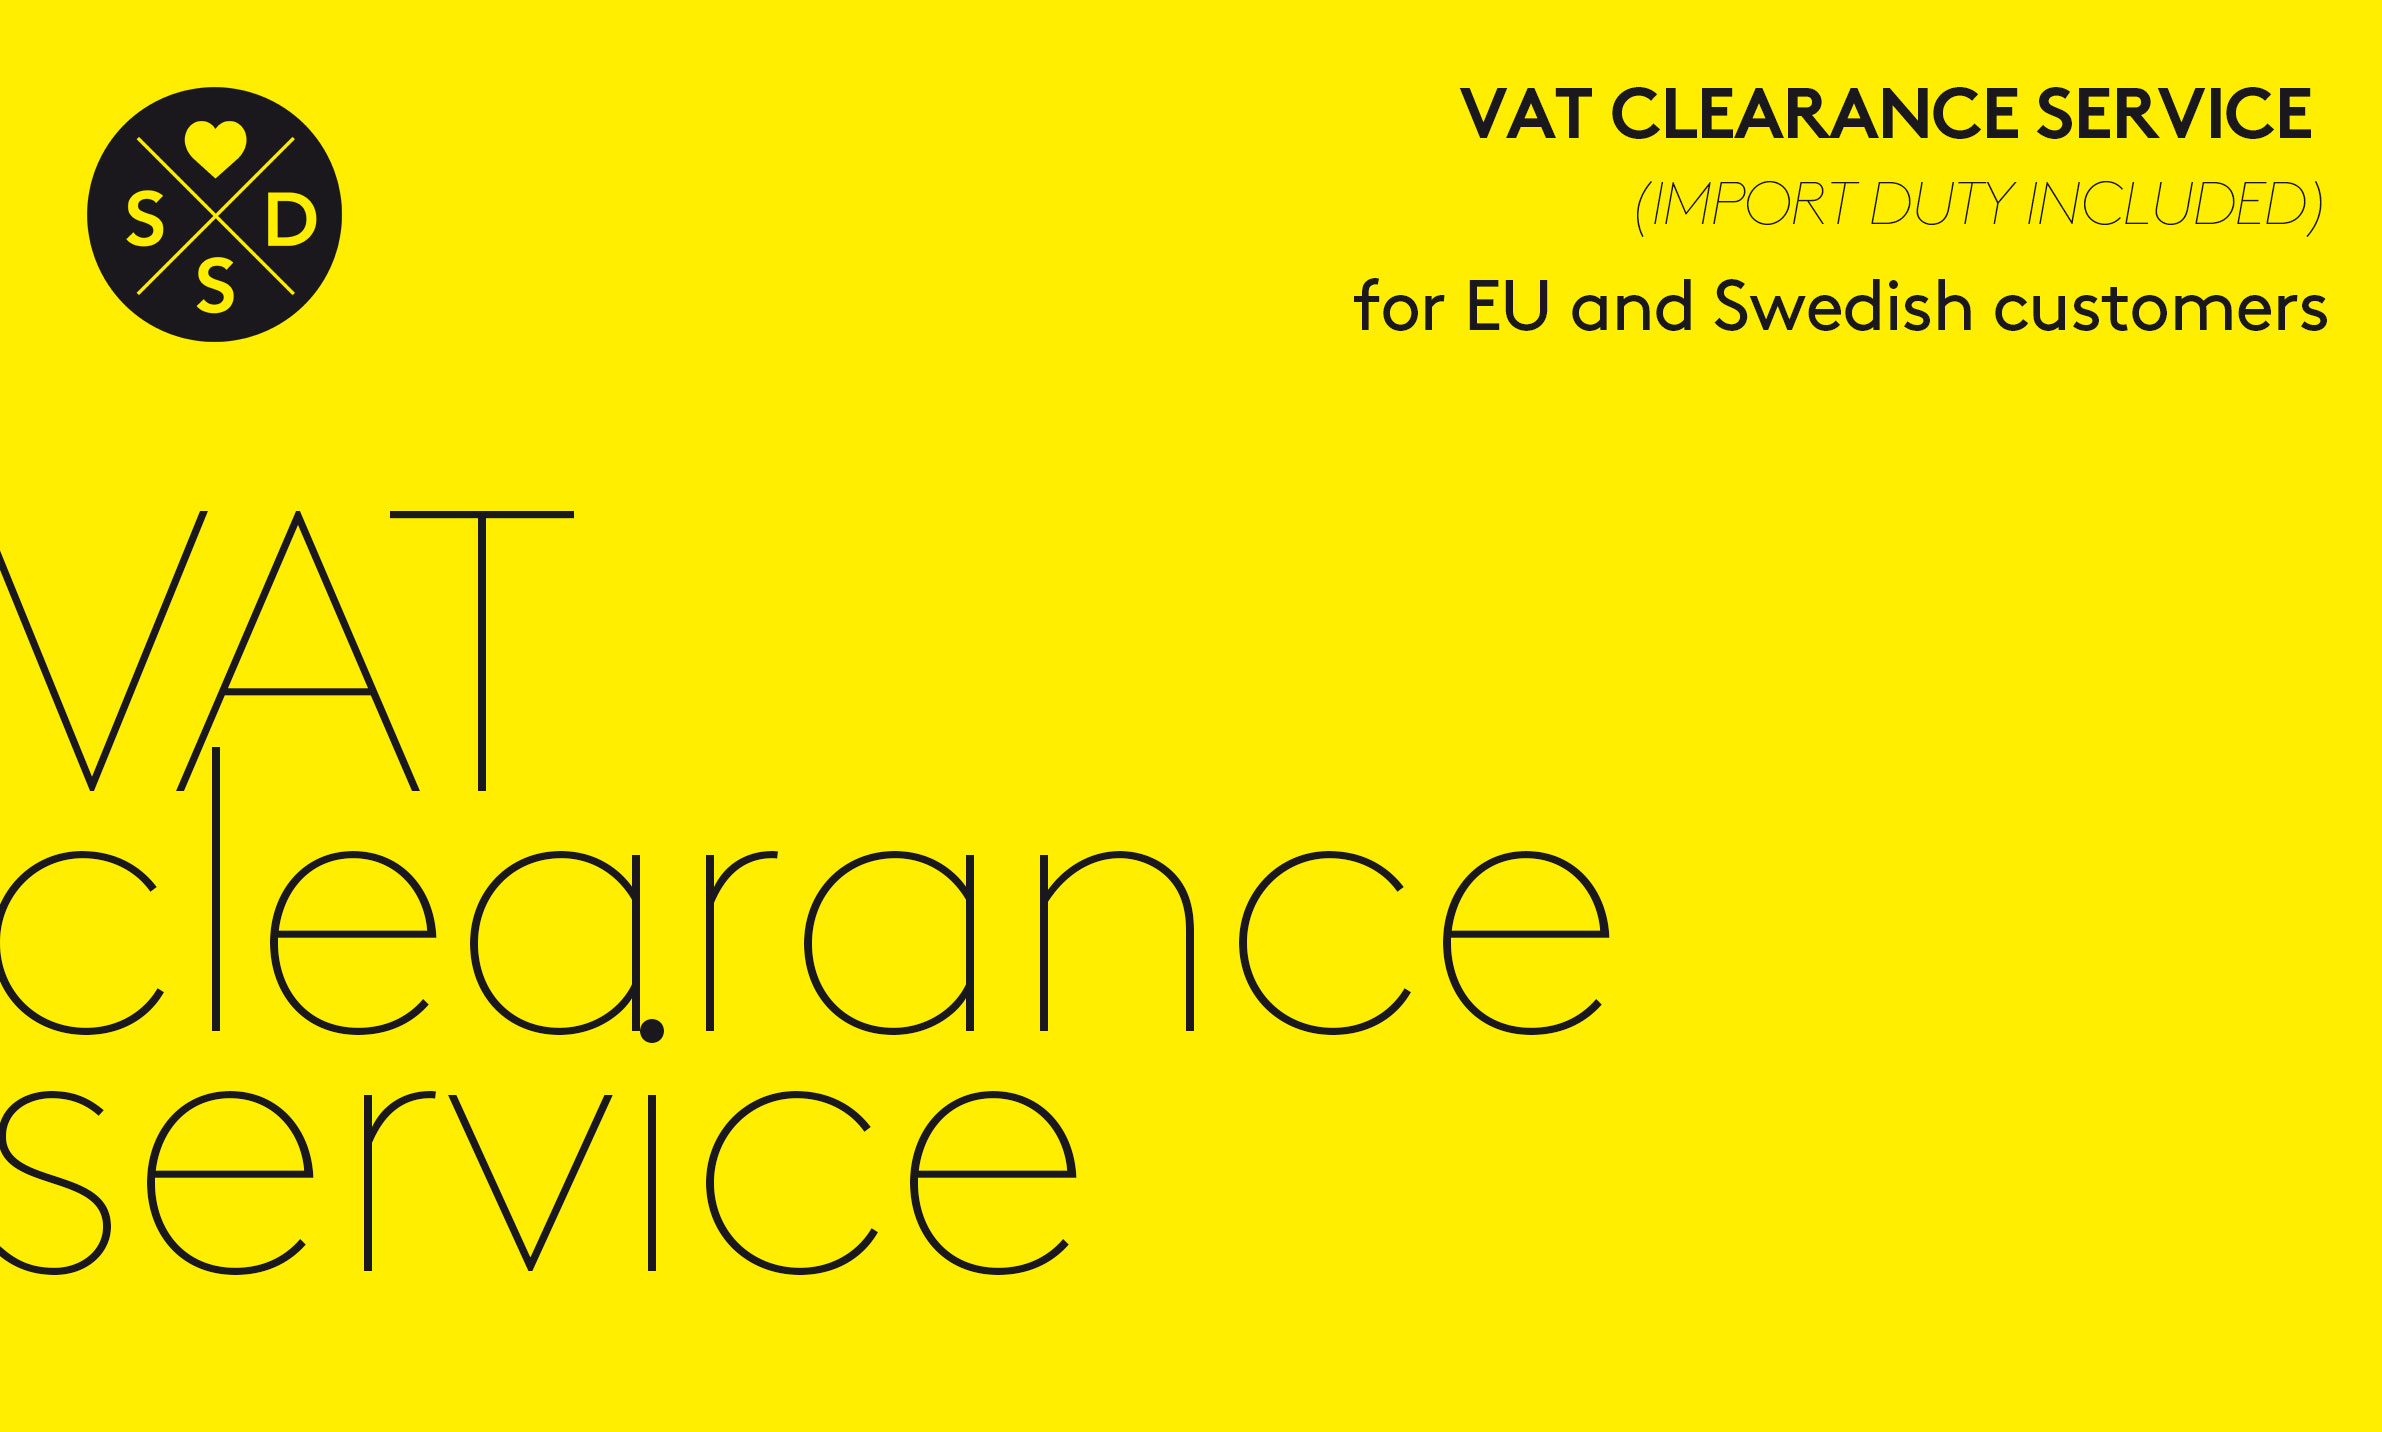 VAT Clearance Service for EU and Swedish Customers!